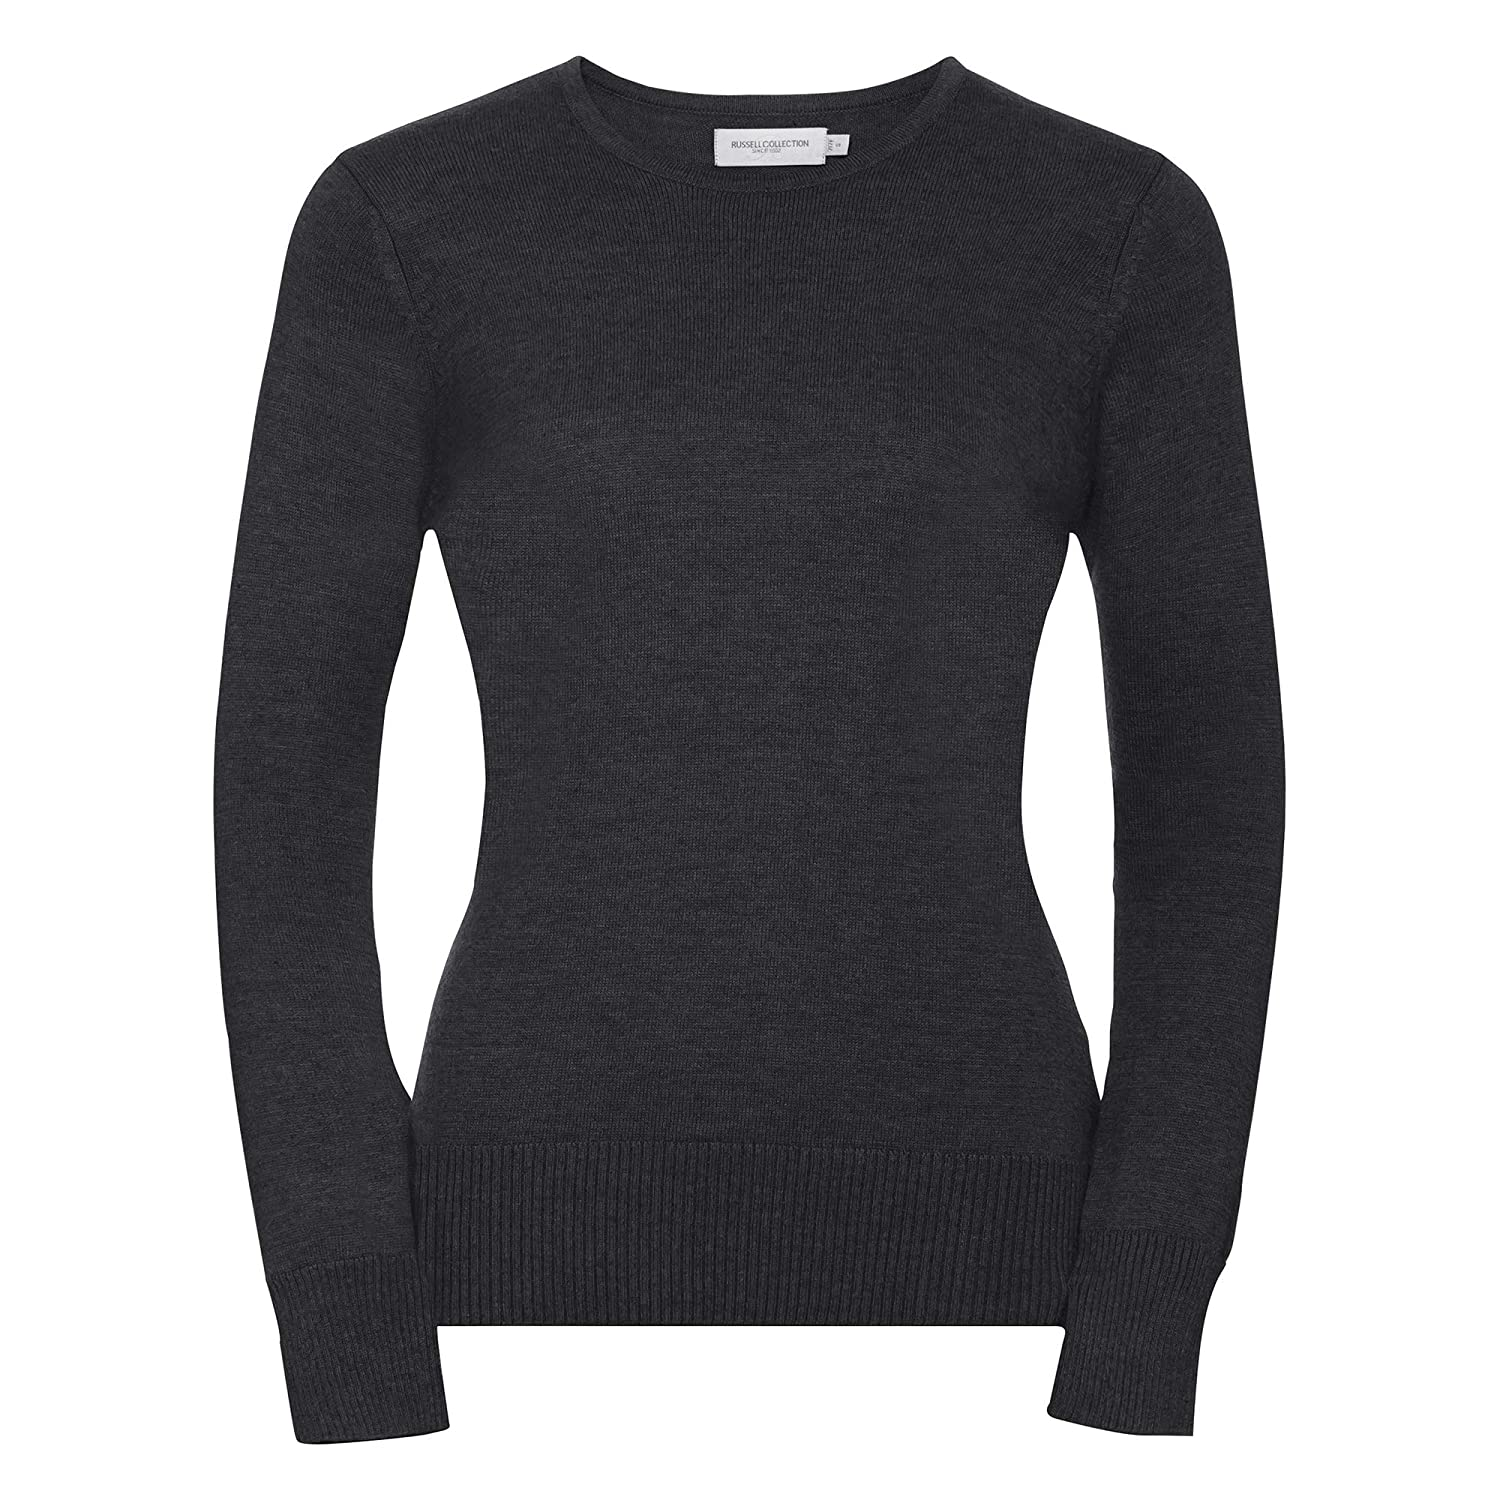 Russell Collection Womens//Ladies Crew Neck Knitted Pullover Sweatshirt